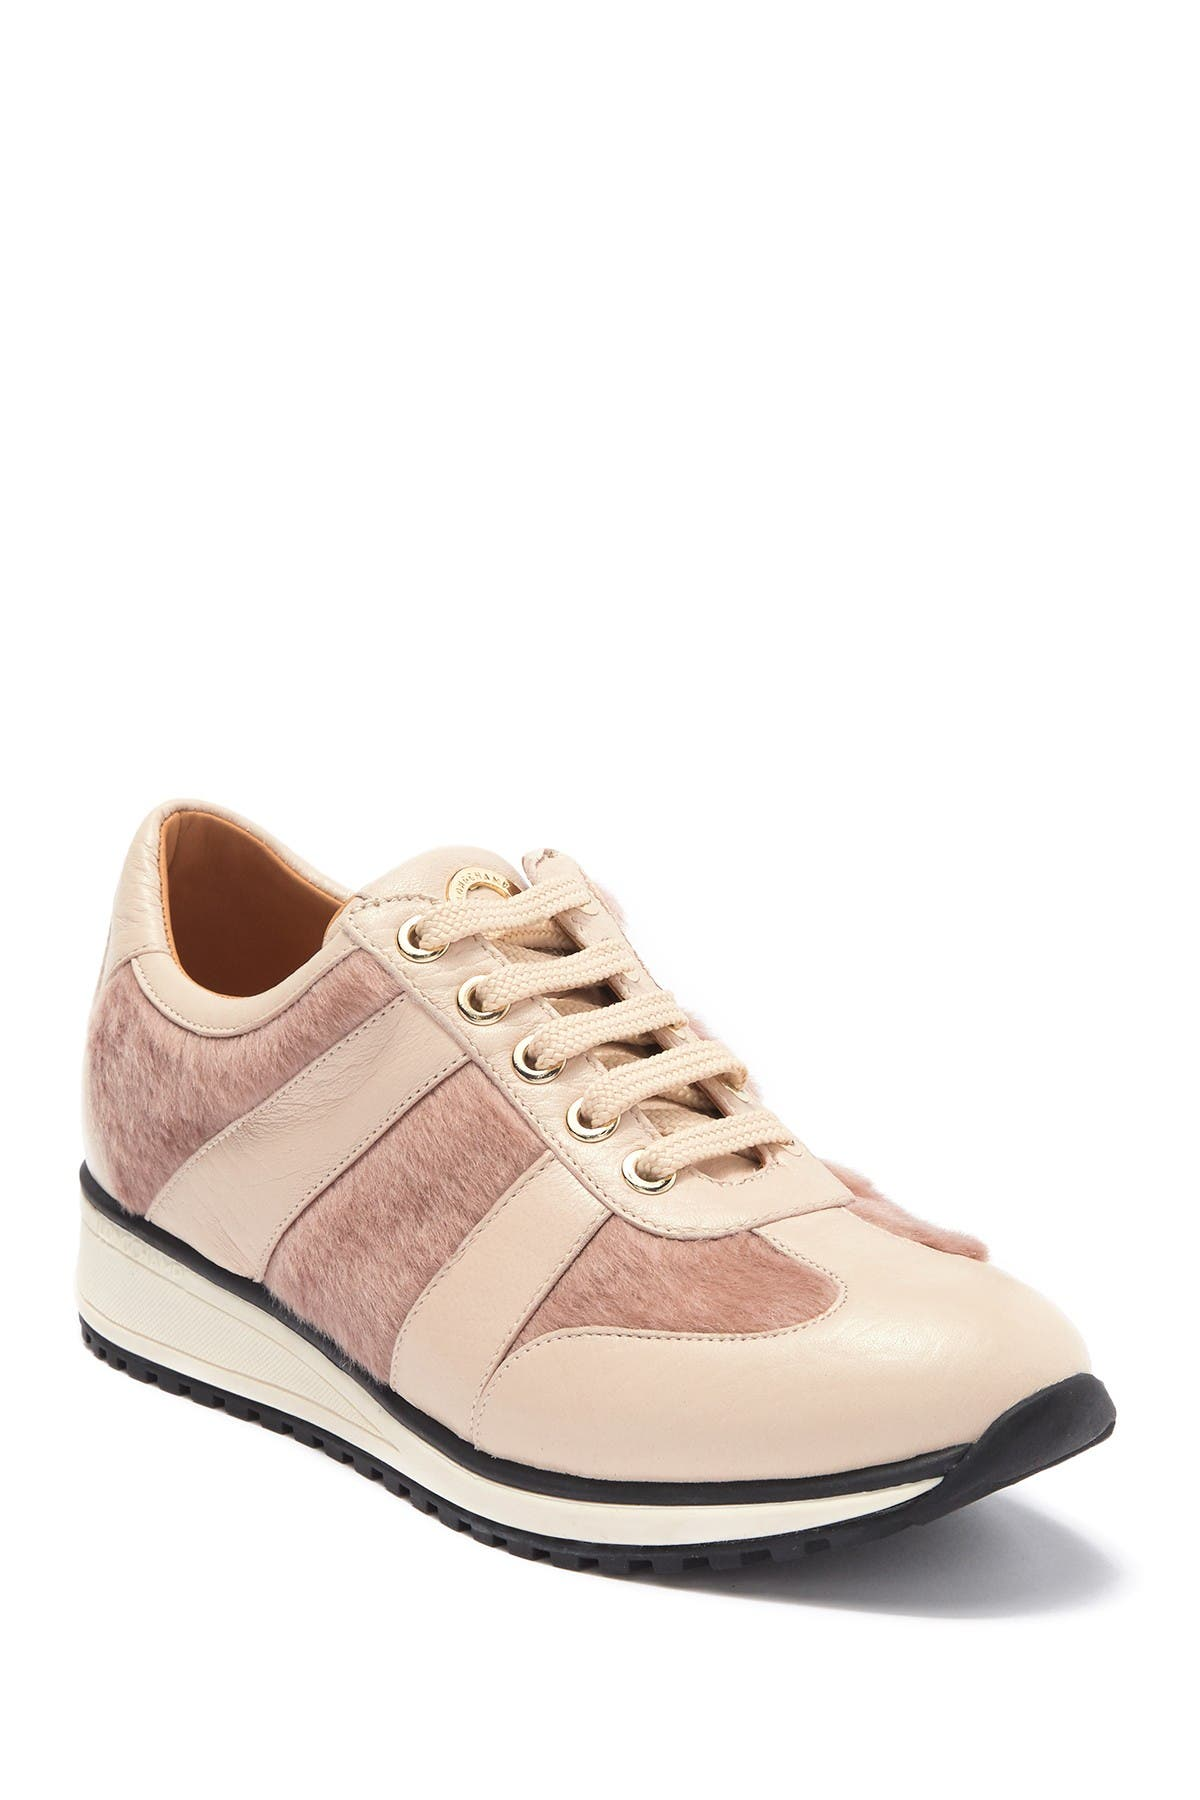 Image of LONGCHAMP Genuine Calf Hair & Leather Sneaker